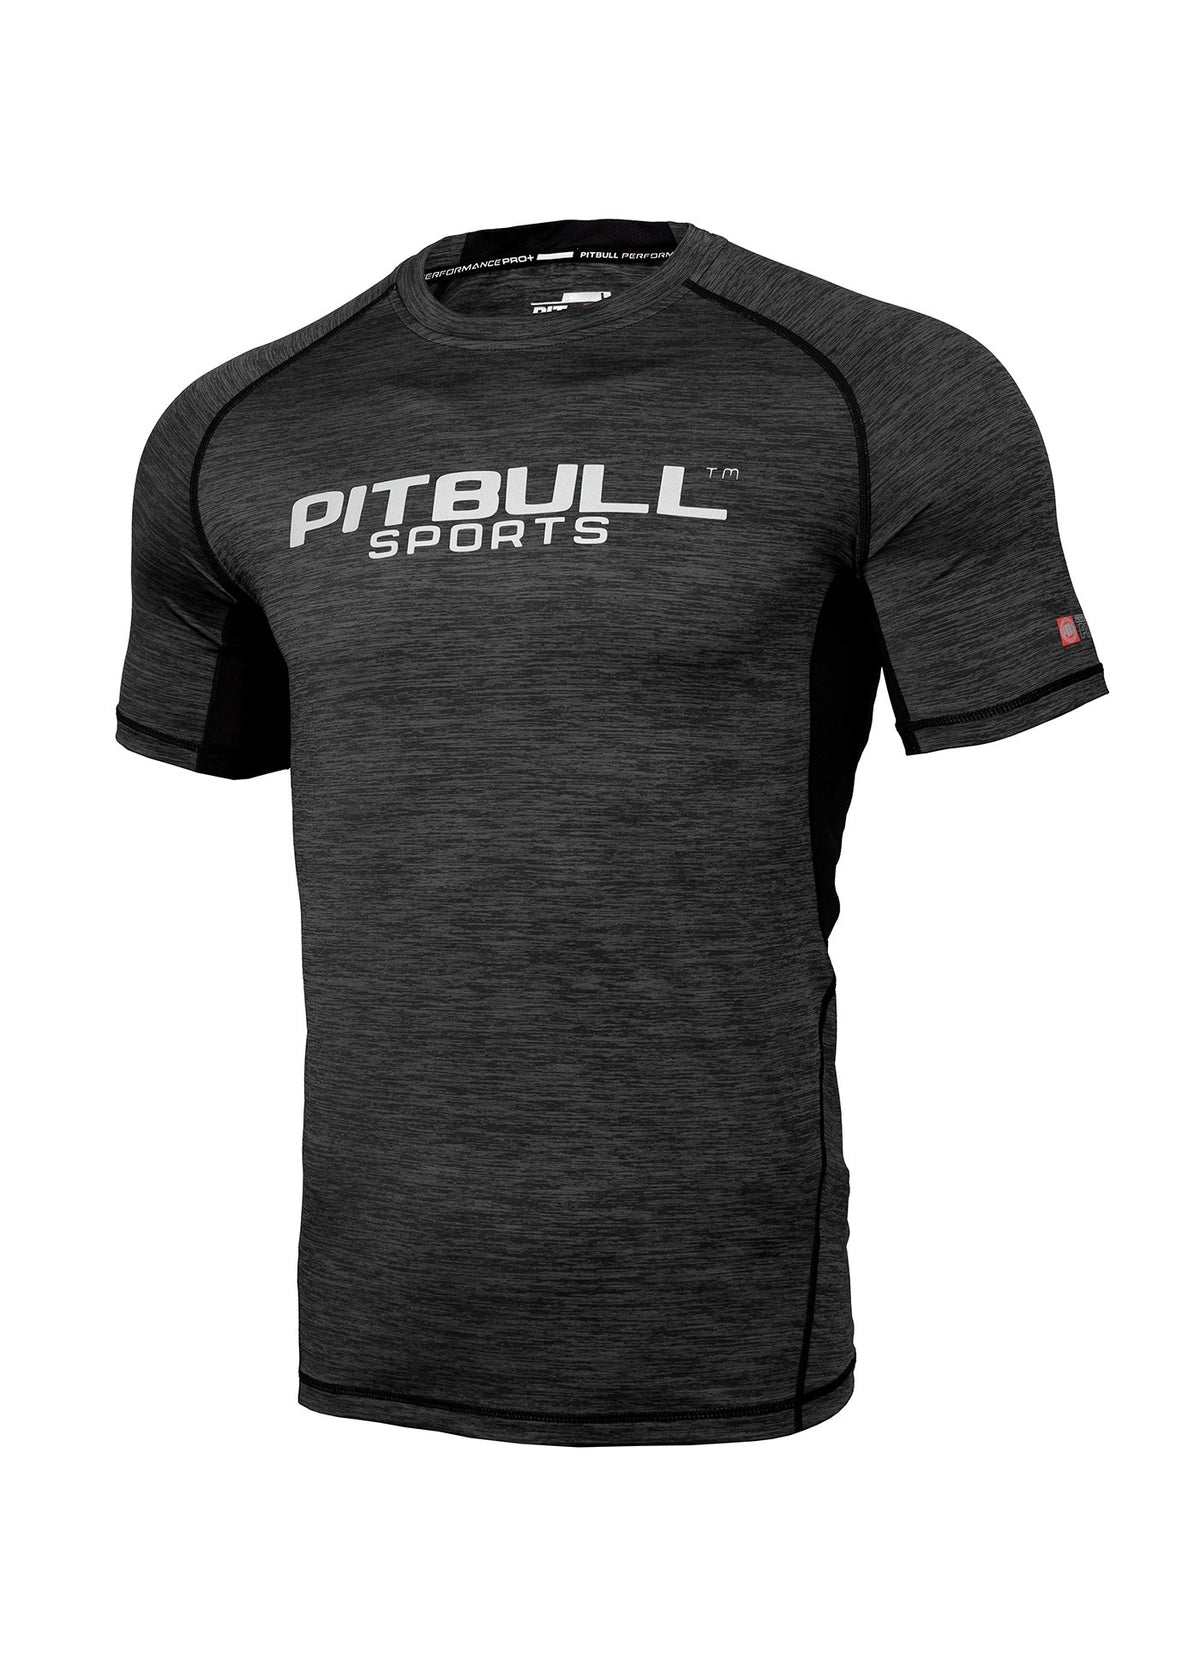 RASHGUARD PRO PLUS MLG Charcoal - Pitbull West Coast U.S.A.